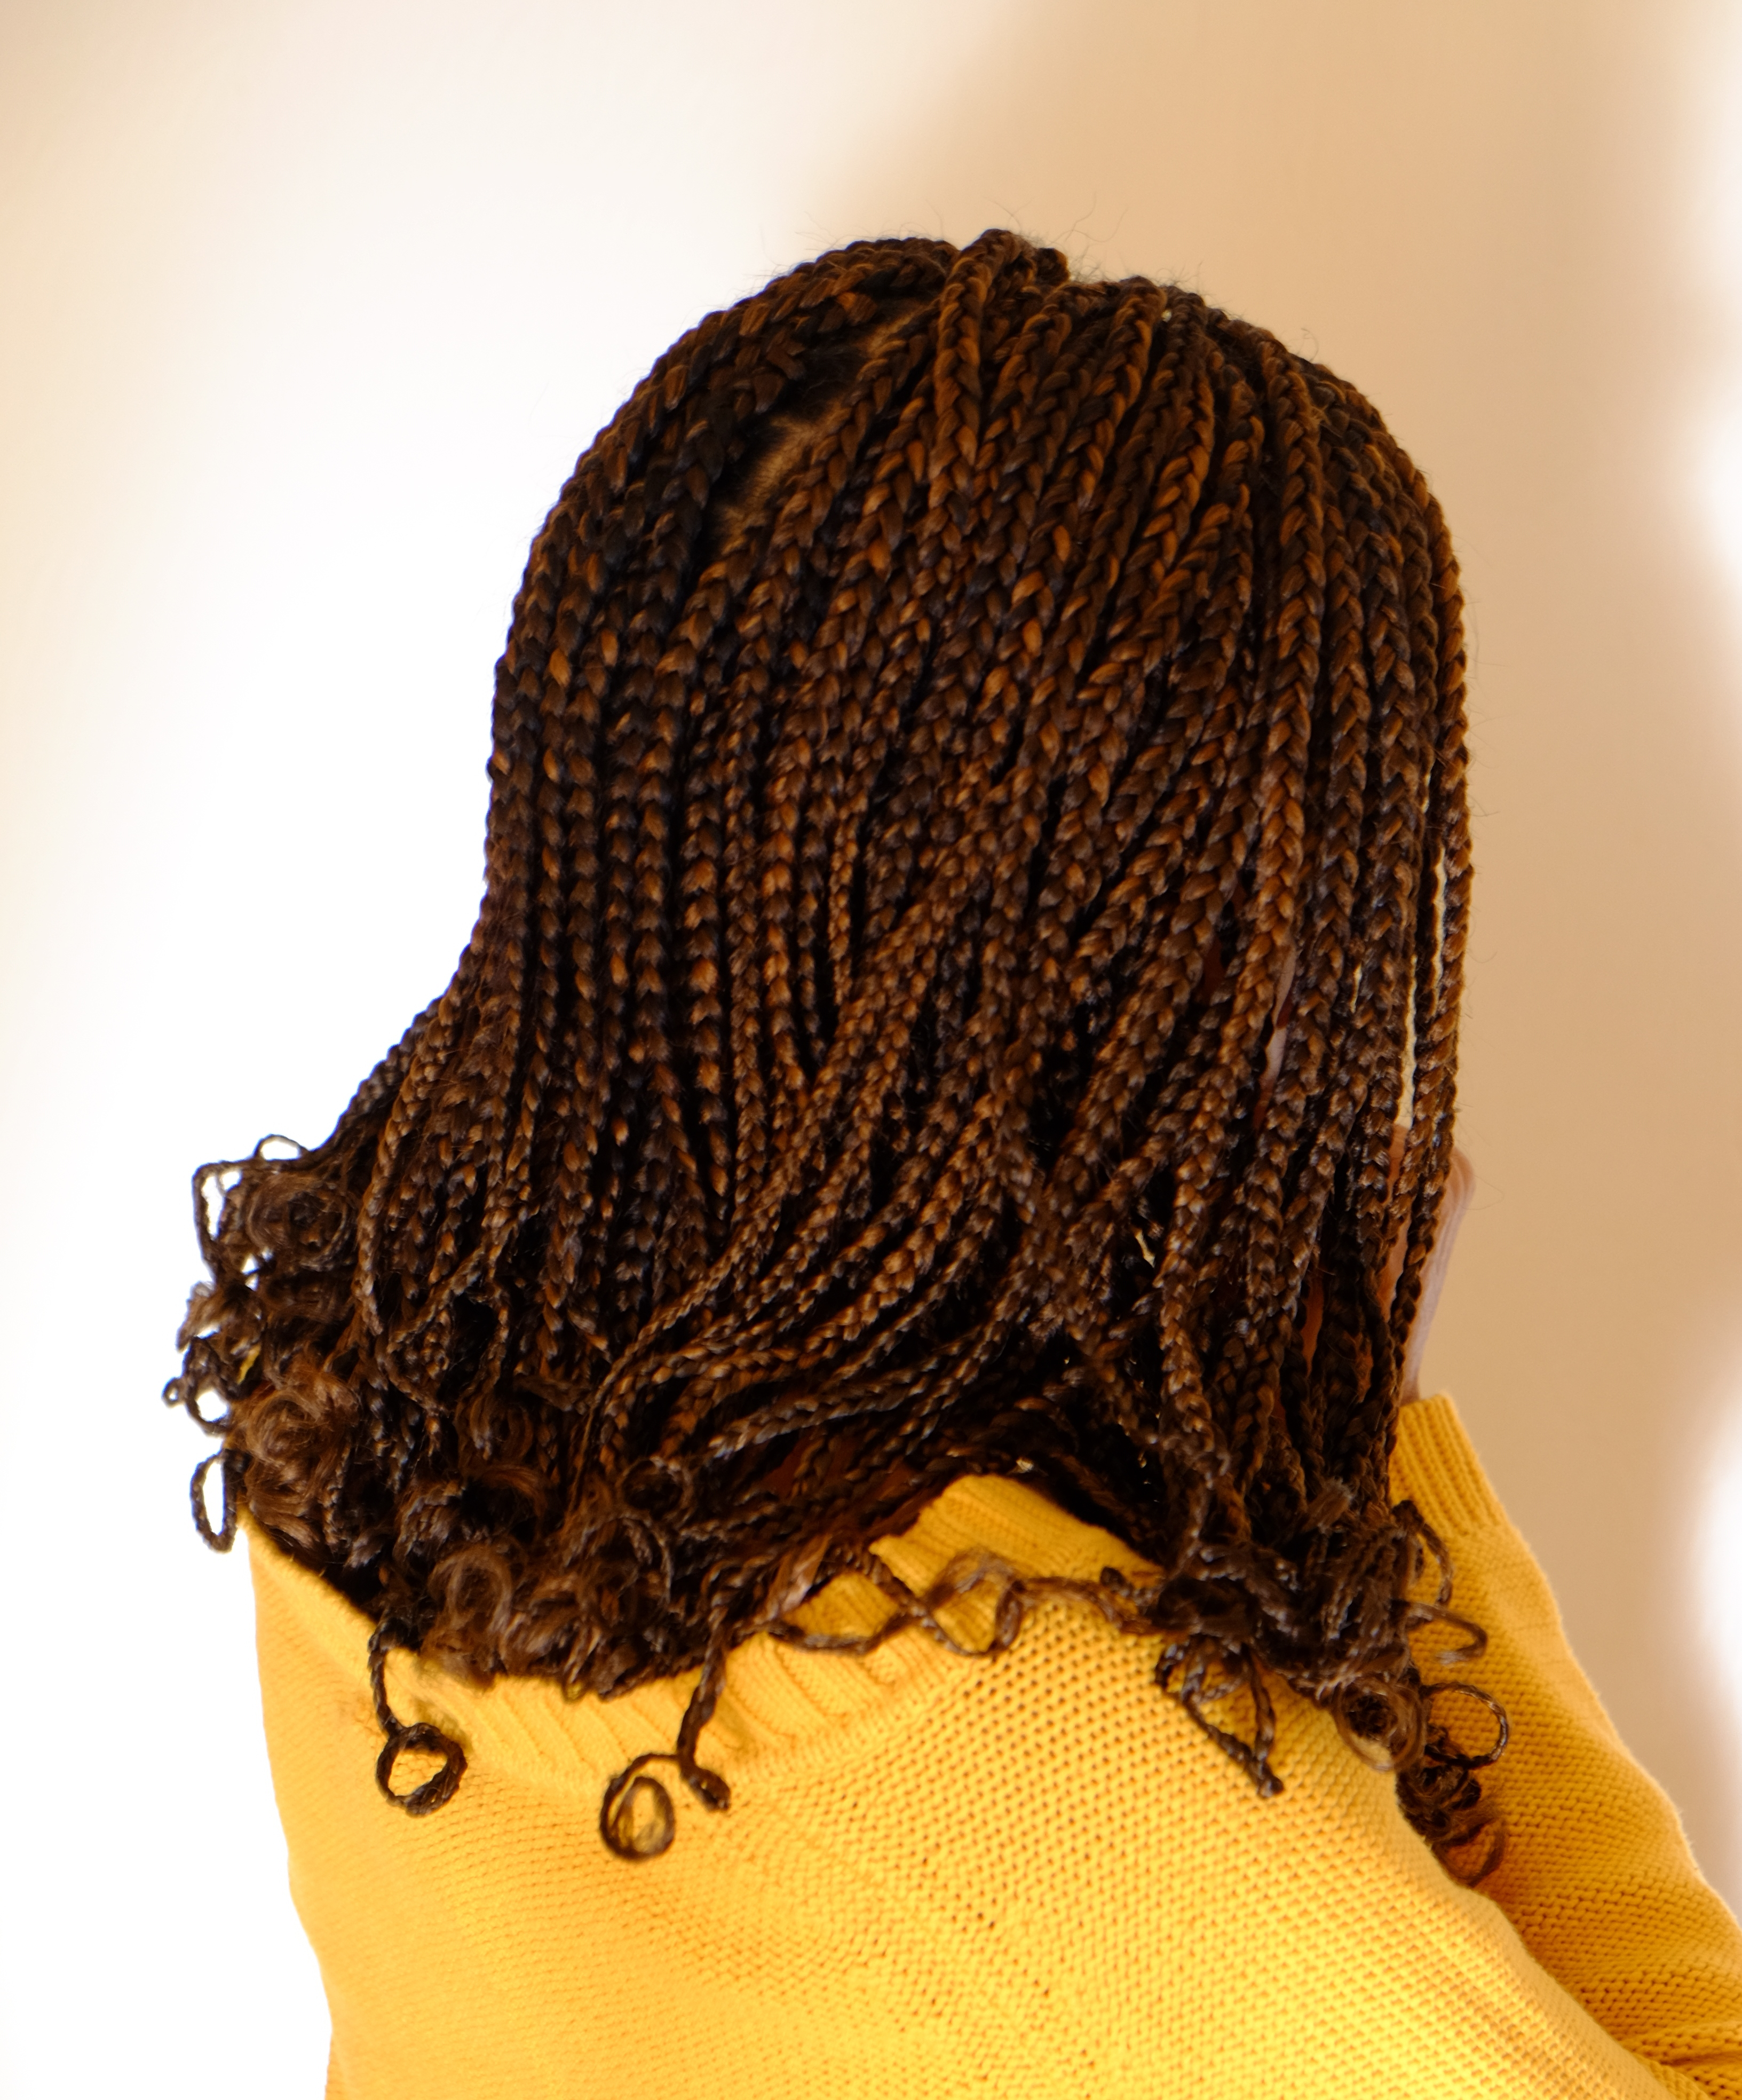 salon de coiffure afro tresse tresses box braids crochet braids vanilles tissages paris 75 77 78 91 92 93 94 95 WAABOFLI